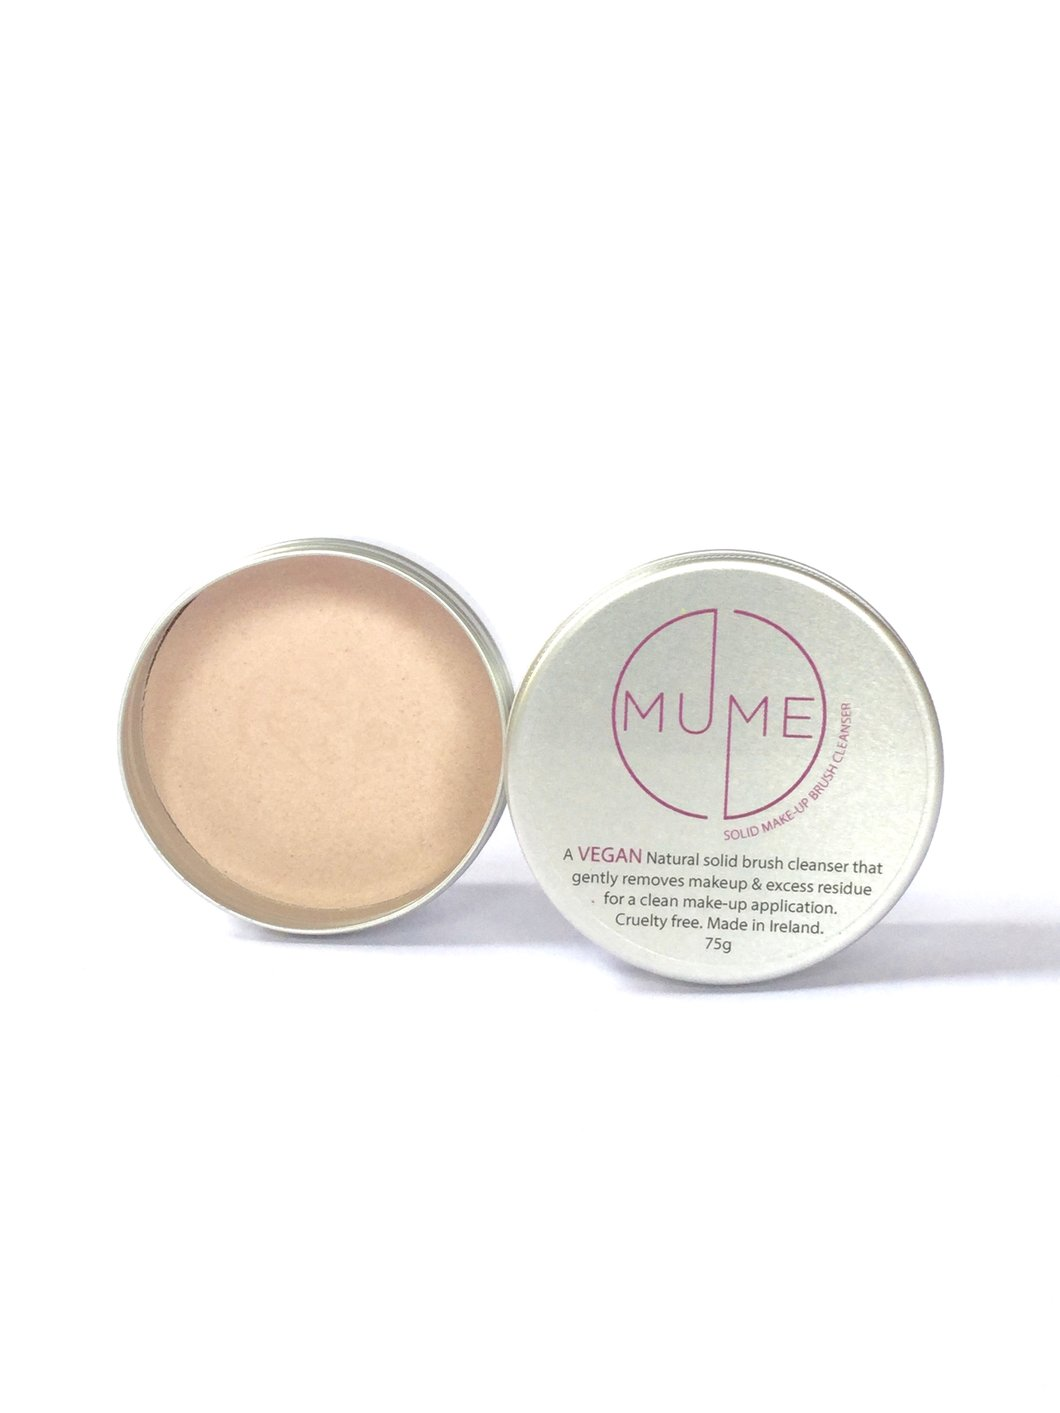 Mume Vegan Brush Cleaner